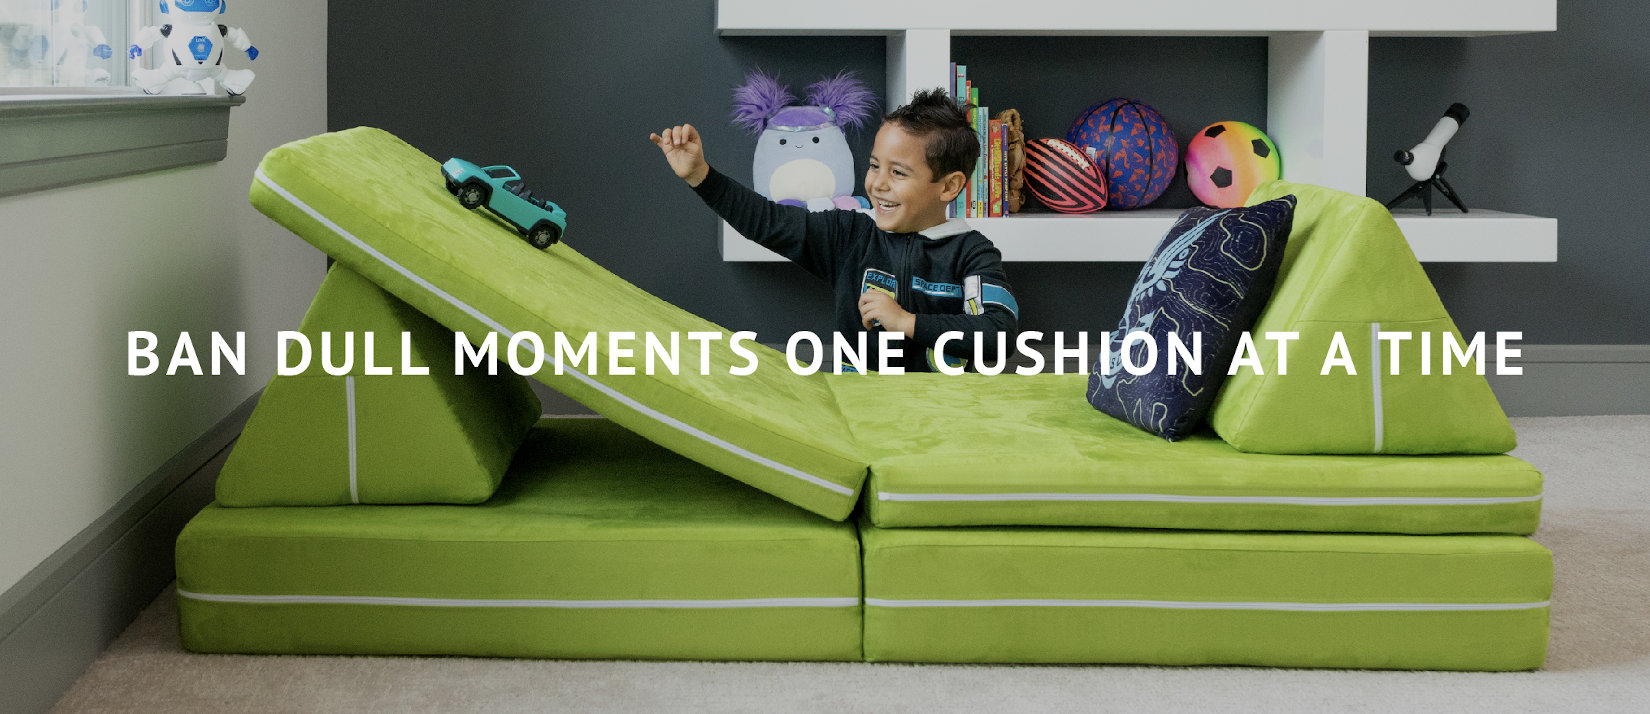 Ban Dull Moments One Cushion at a Time   Young child playing with the Zipline Playscape